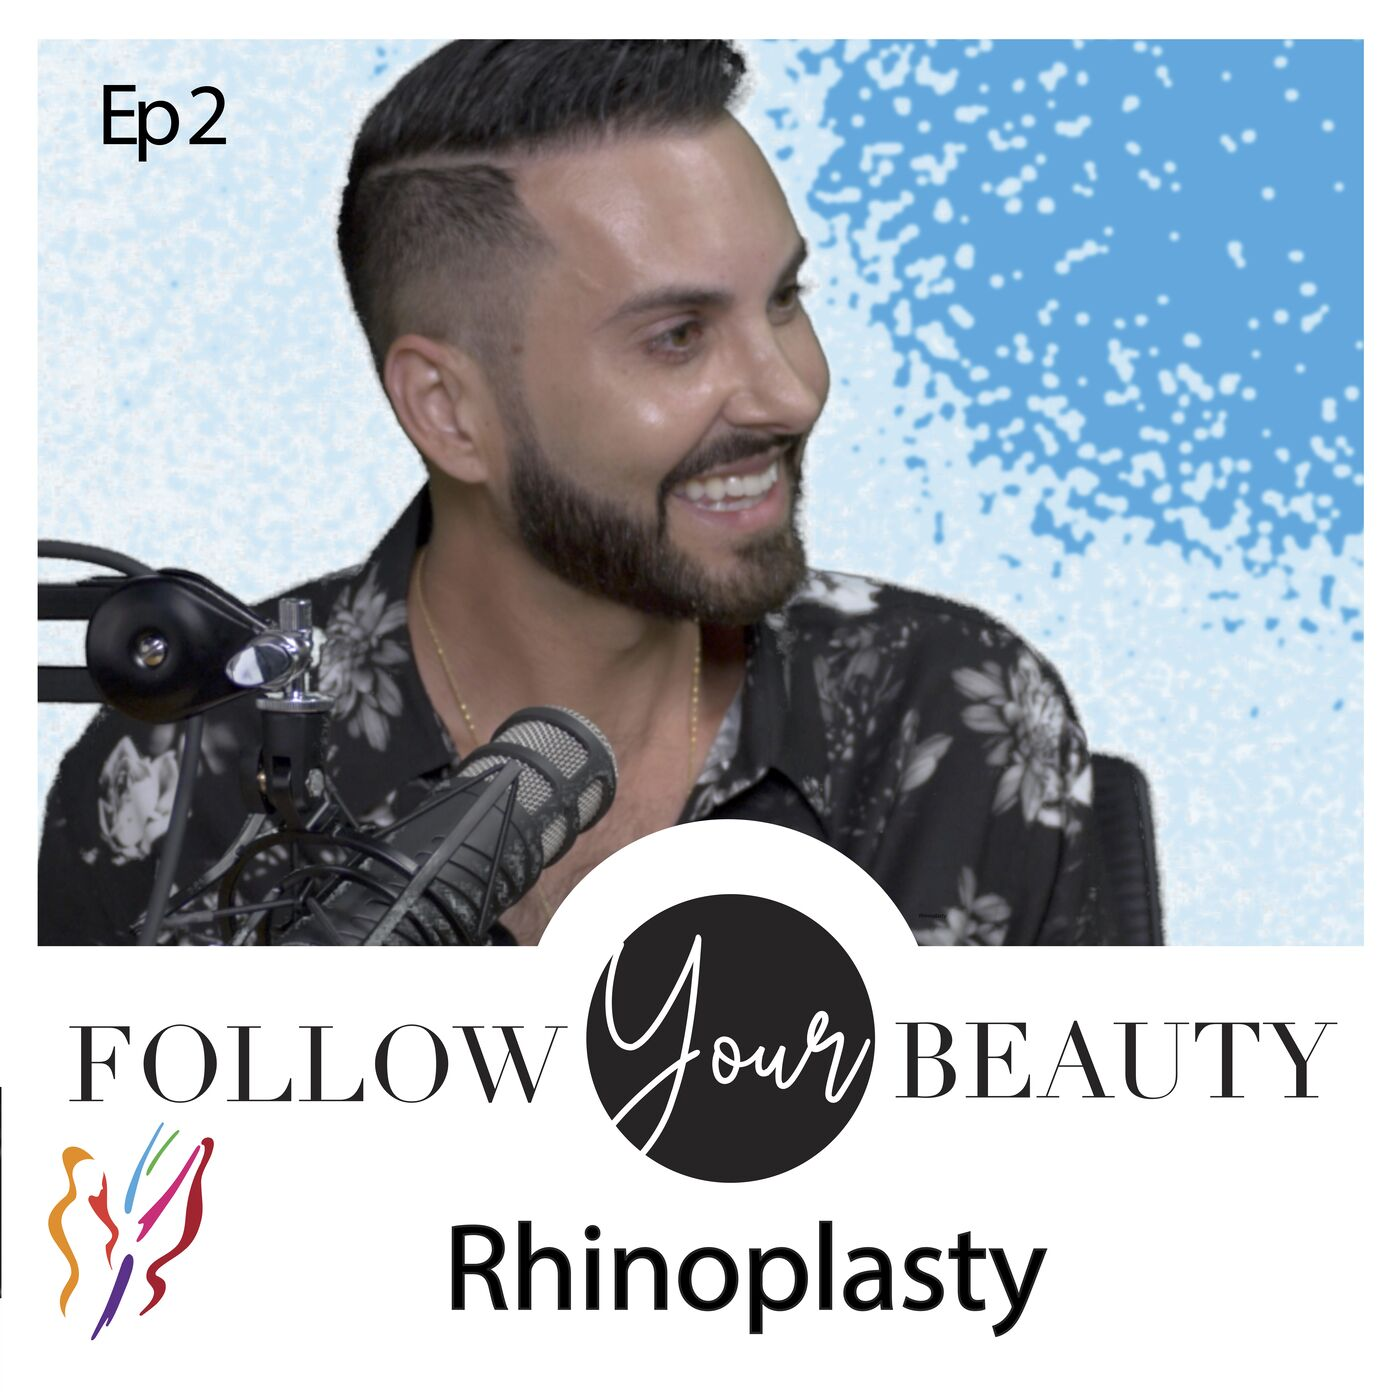 Follow Your Beauty - Follow Your Nose!